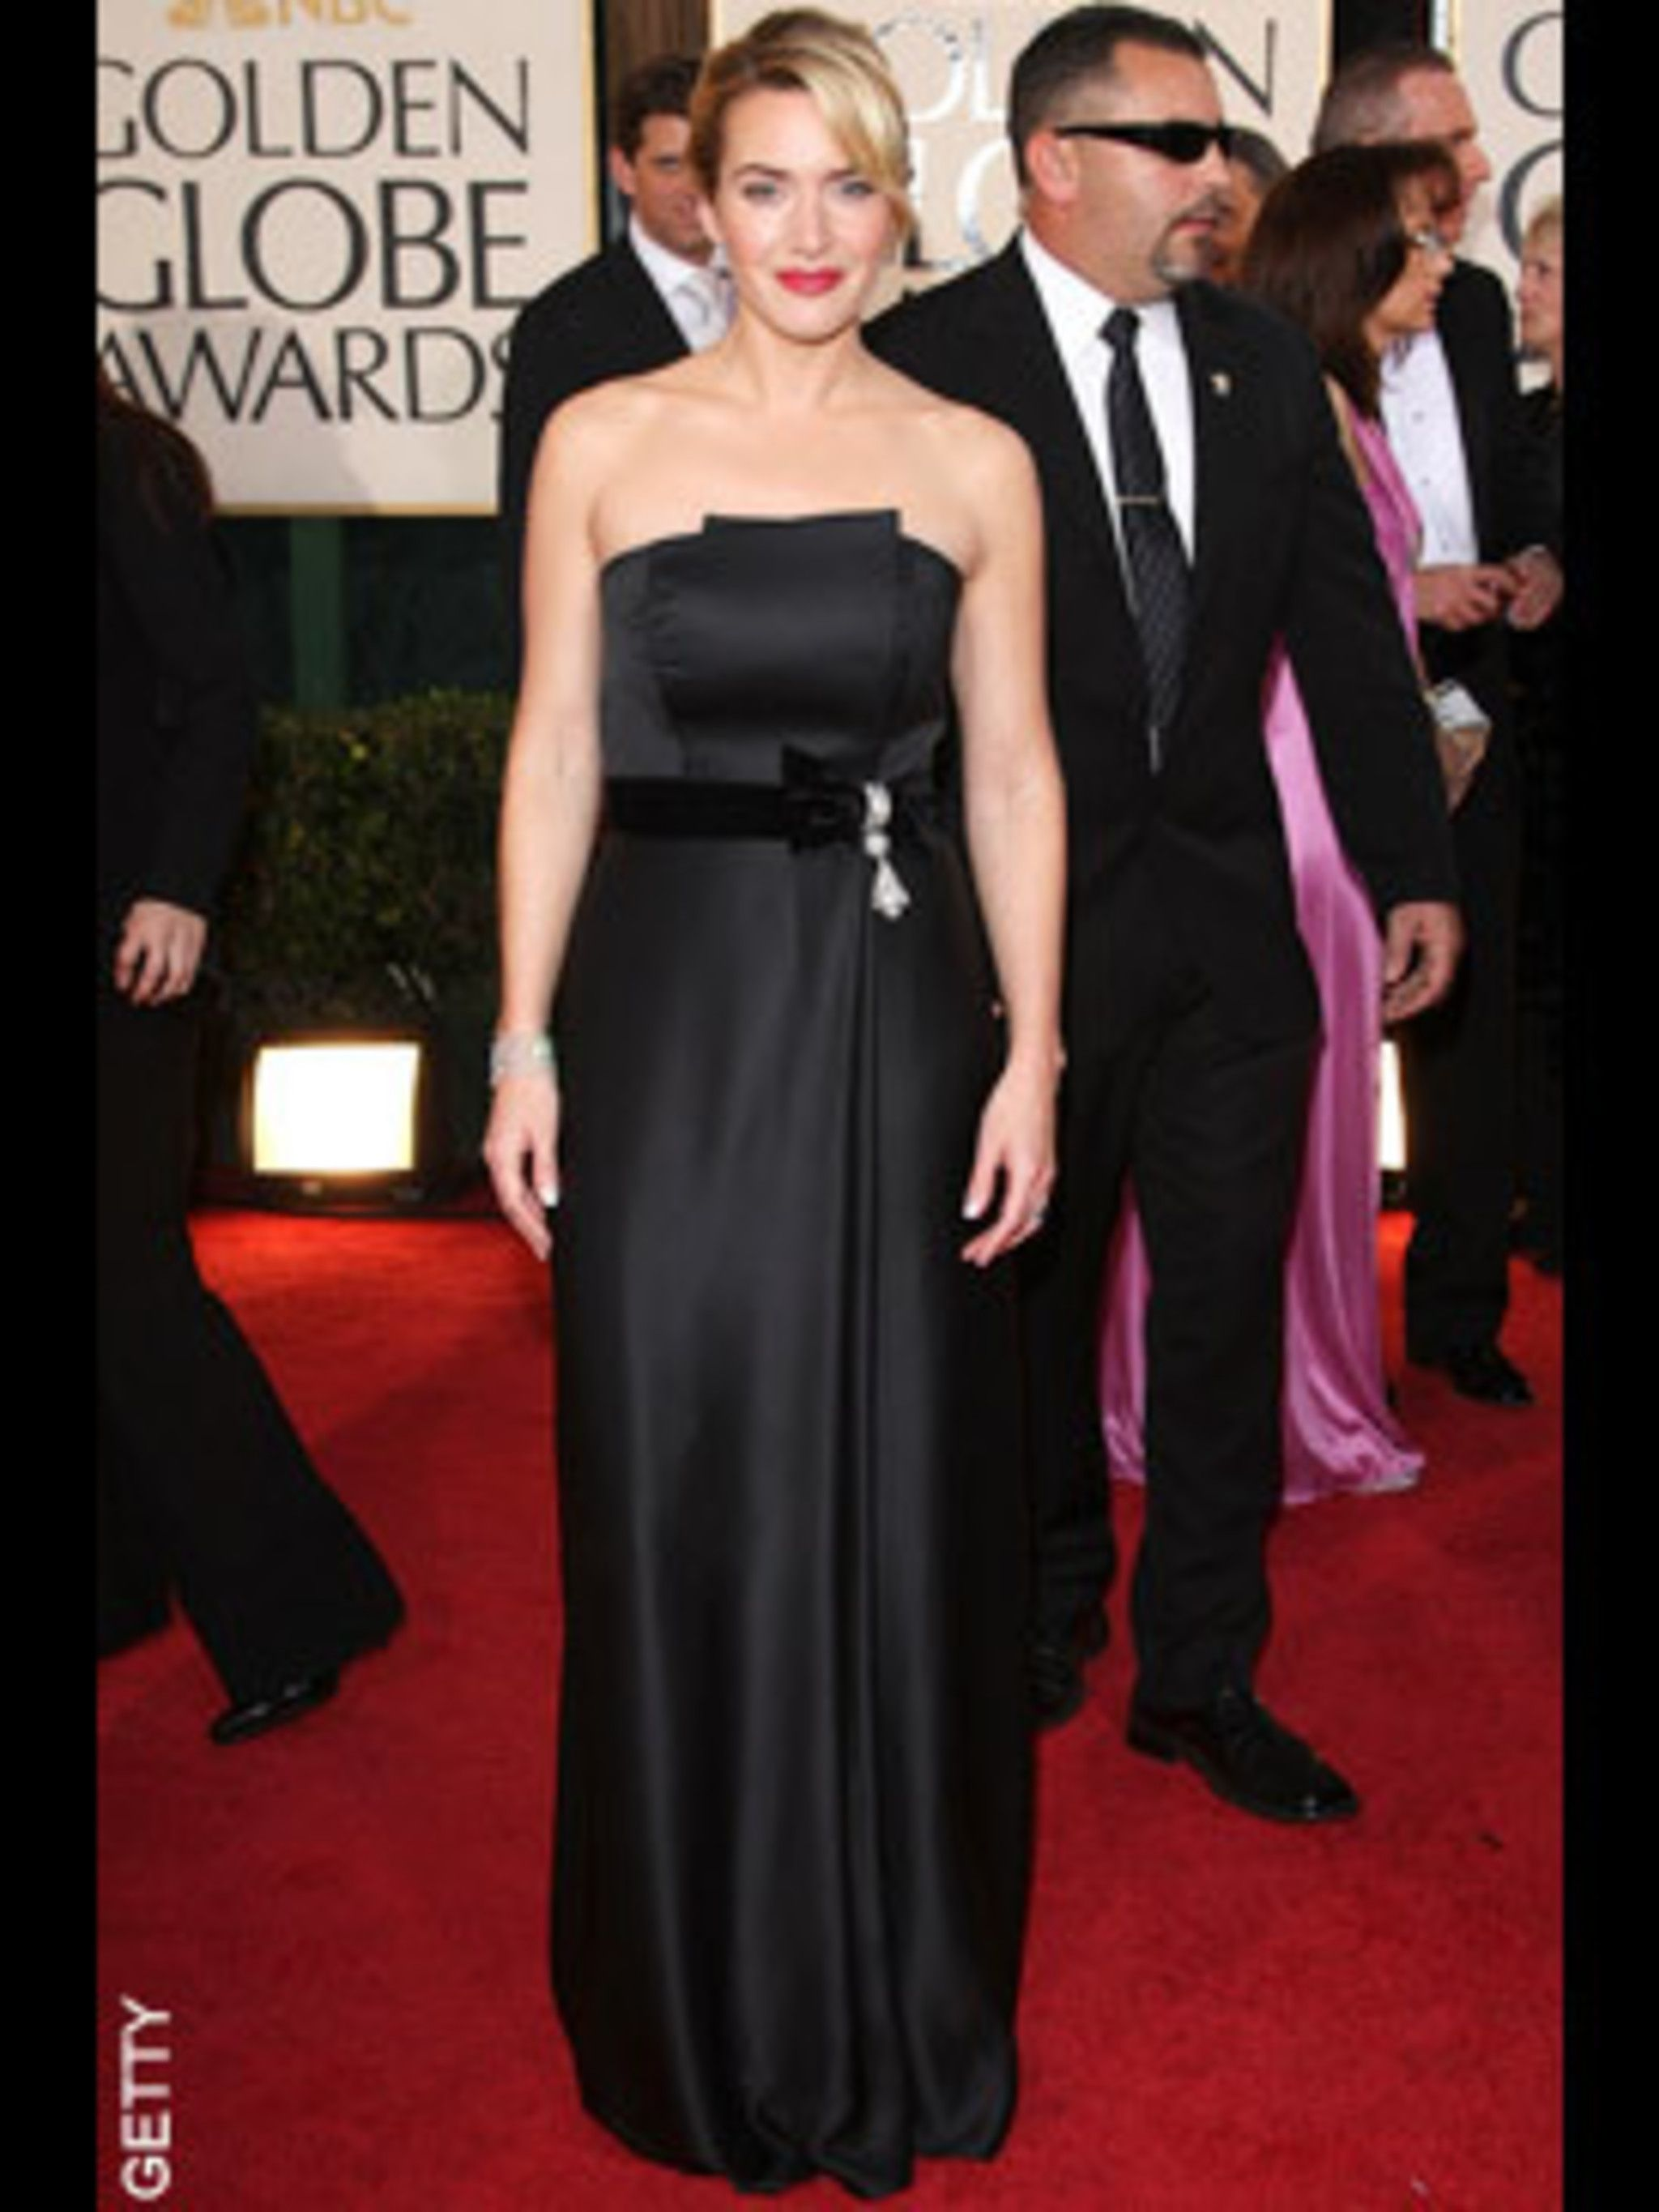 <p>Kate Winslet picked up two awards looking chic and sophisticated in Yves Saint Laurent</p>